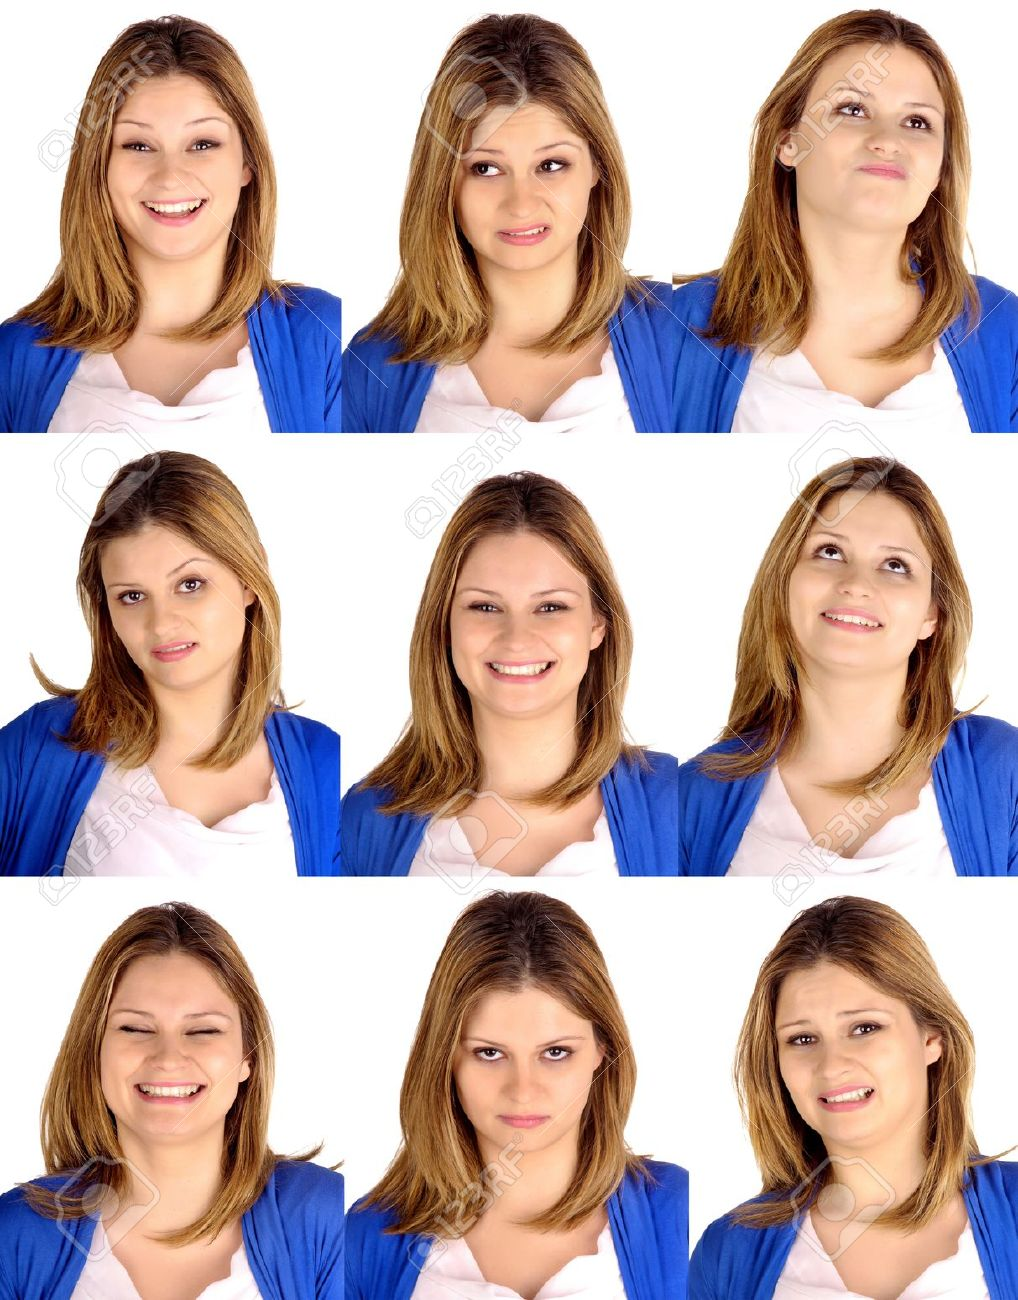 facial expressions pictures